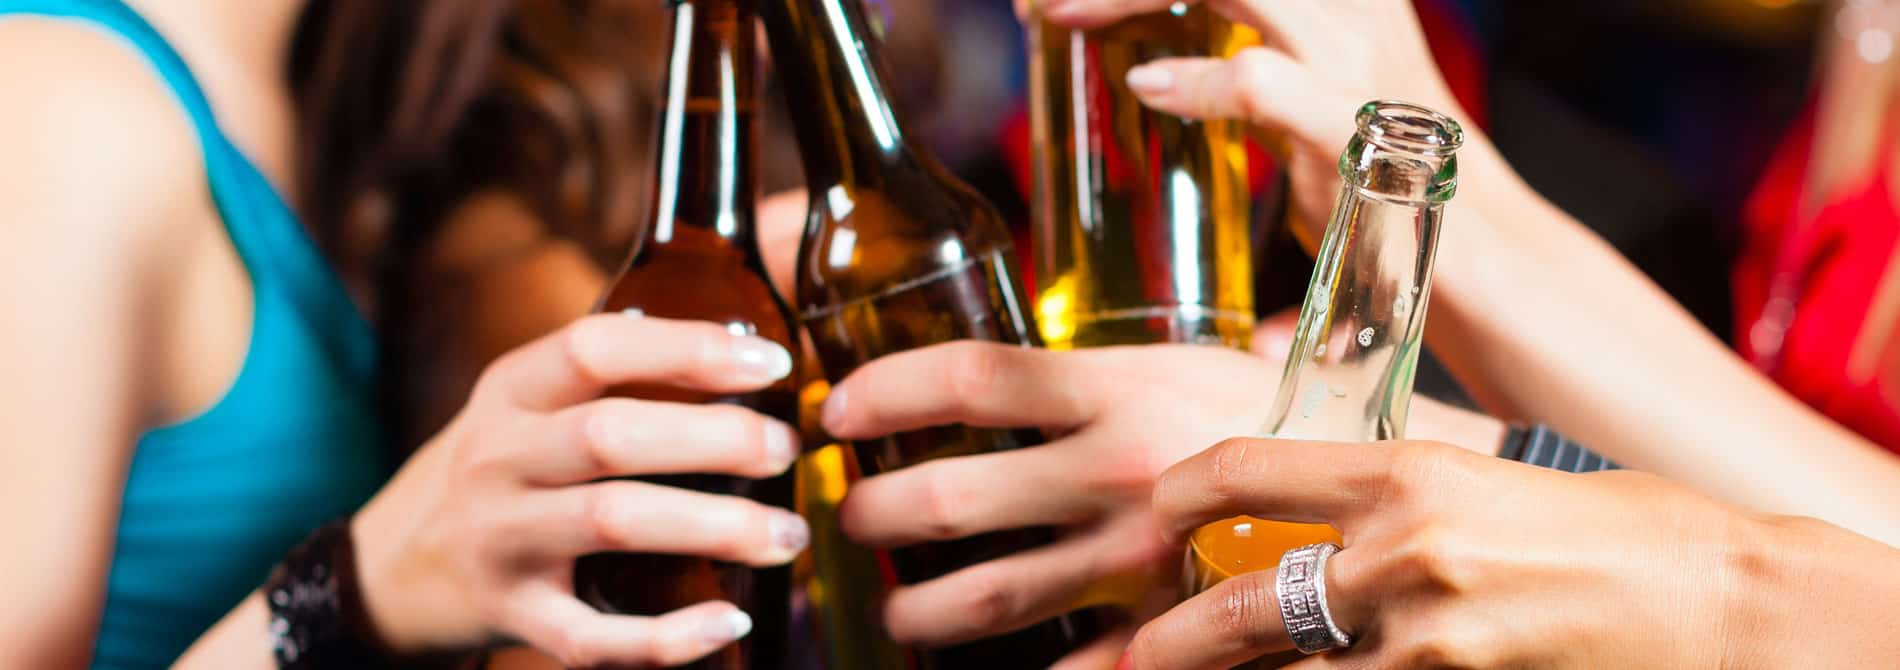 What are the stages of alcoholism?